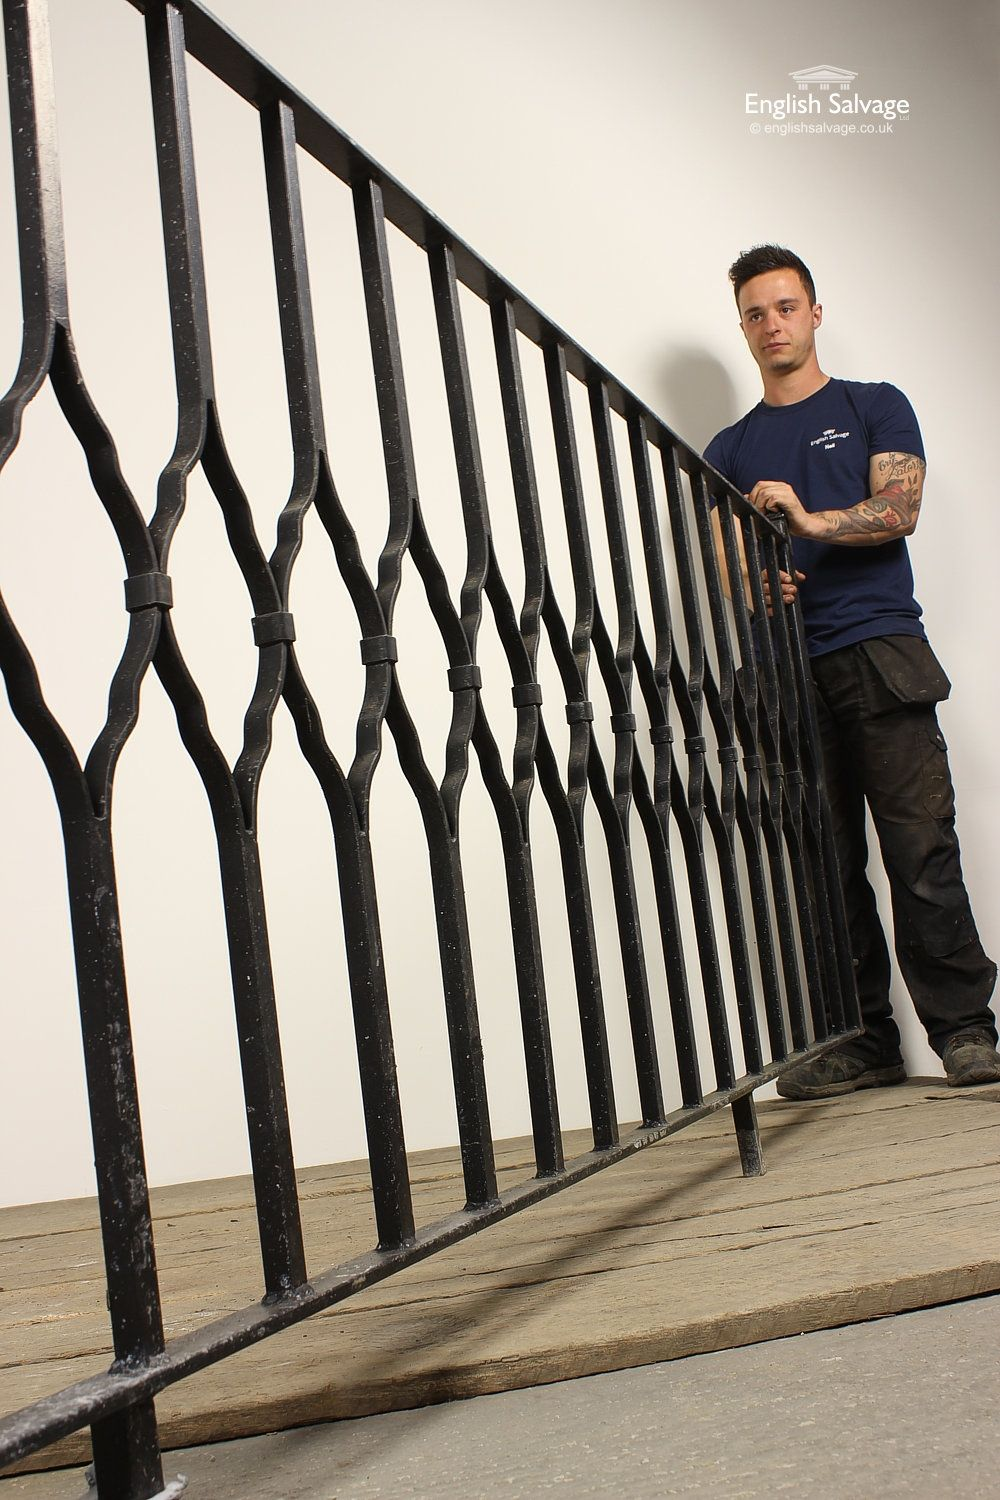 Best Salvaged Wrought Iron Black Painted Railing Balcony 400 x 300